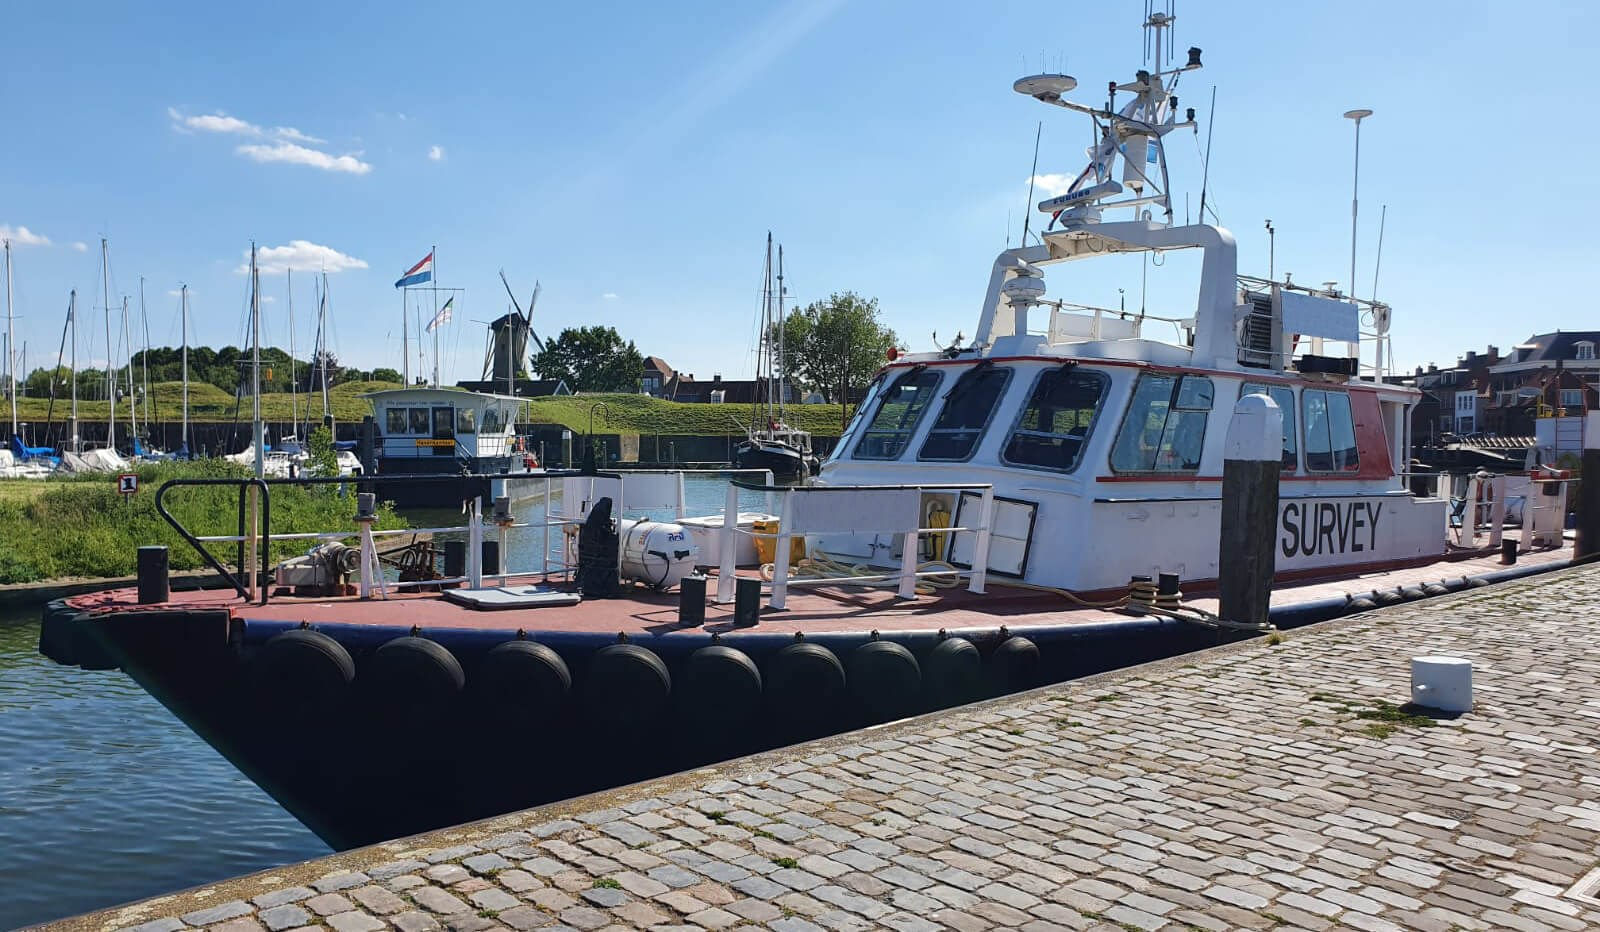 used survey boat in the netherlands for sale 07627 (4)